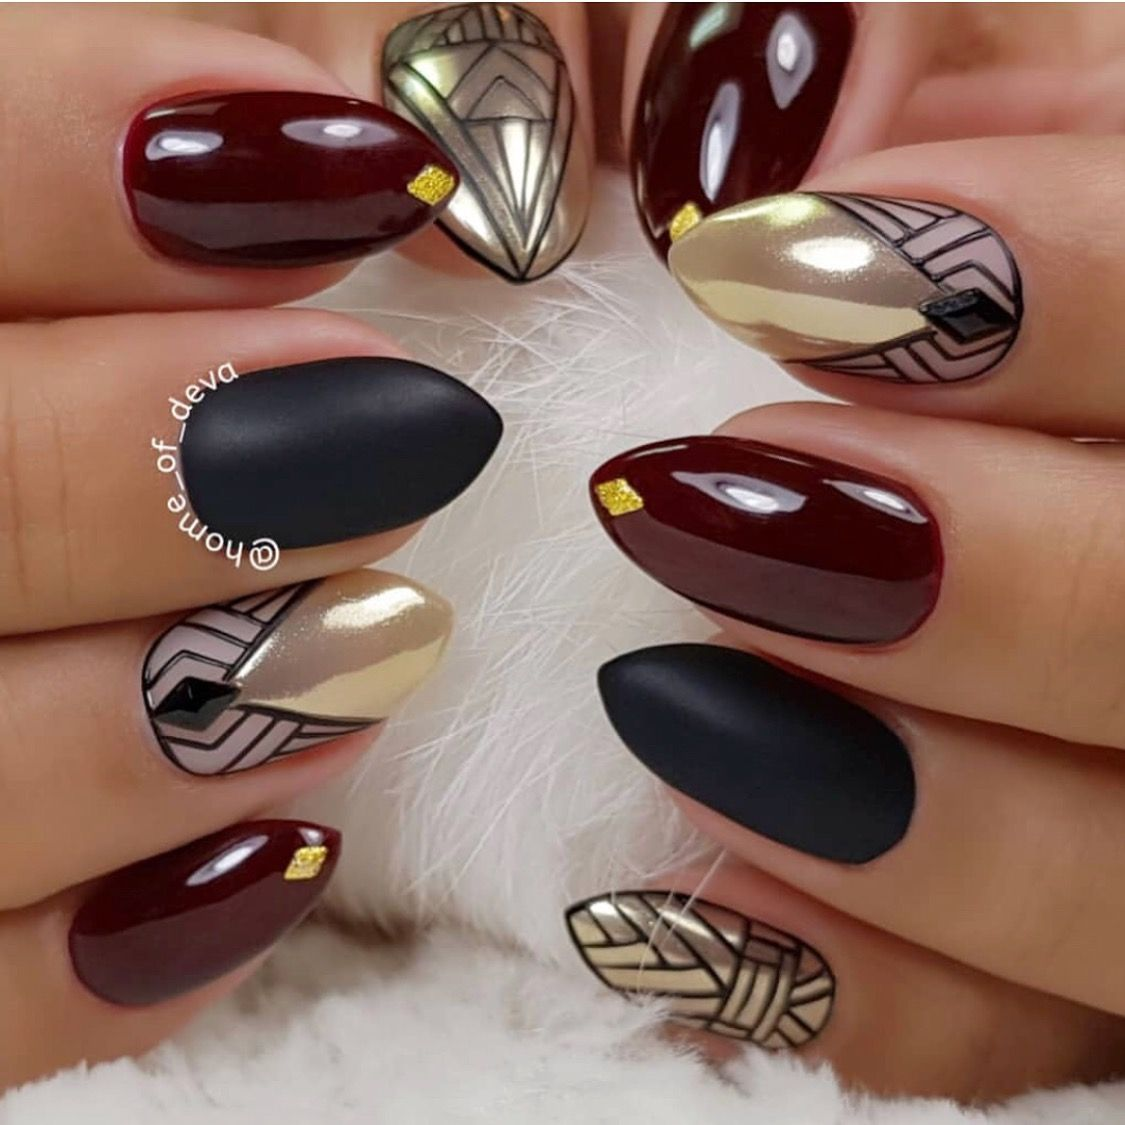 Beautiful Burgundy Almond Shaped Natural Nails With Black Line Work Gold Chrome And Swarovski Crystals By Exclusi Gold Chrome Nails Art Deco Nails Gold Nails